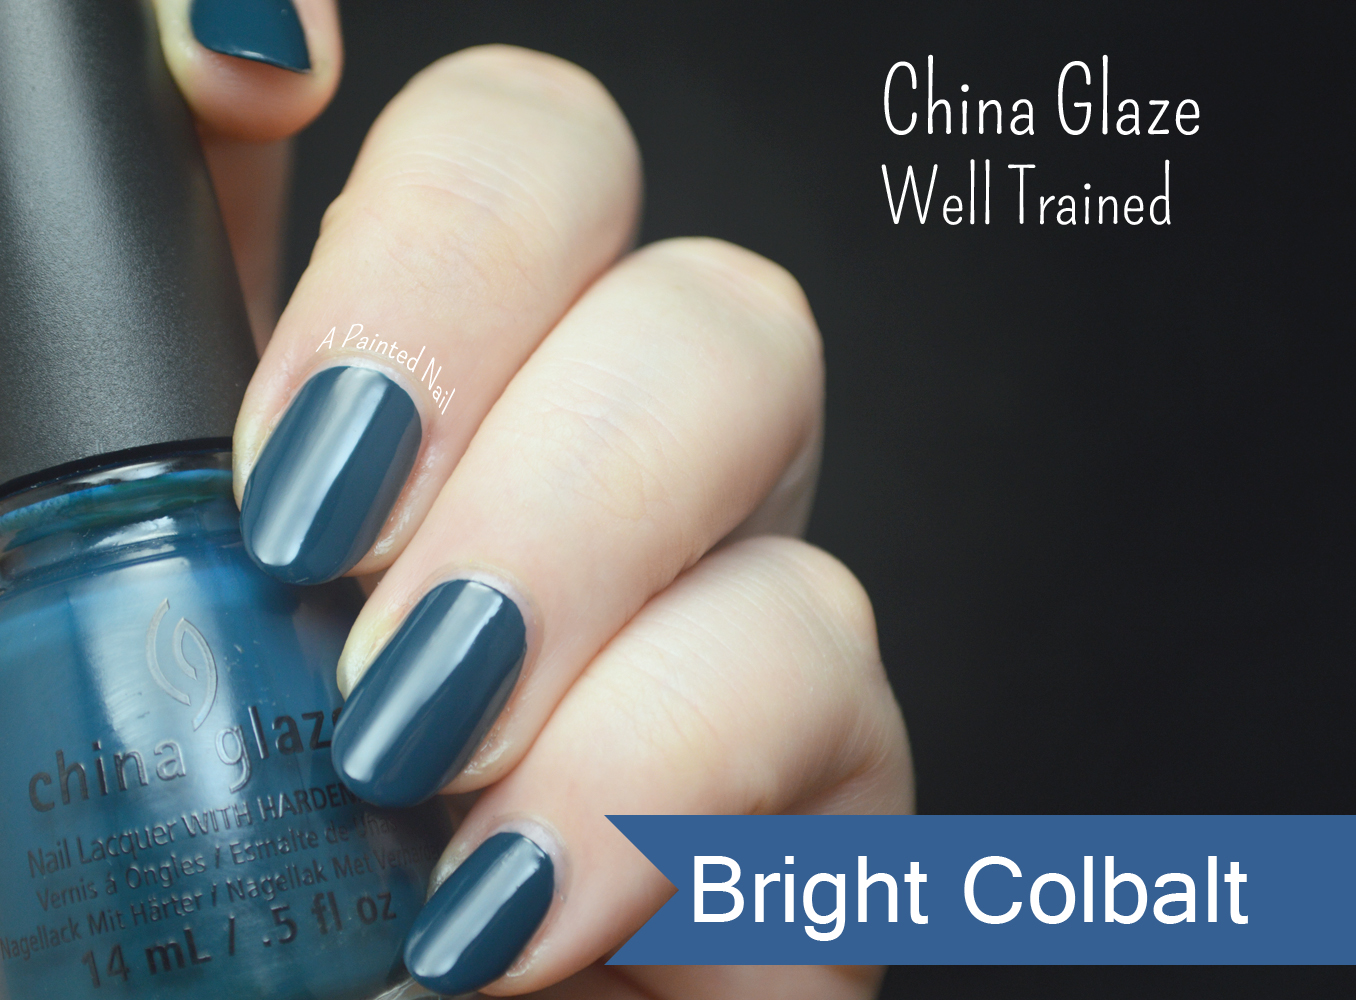 A Painted Nail: China Glaze Well Trained Fall/Winter 2014 Color Trends